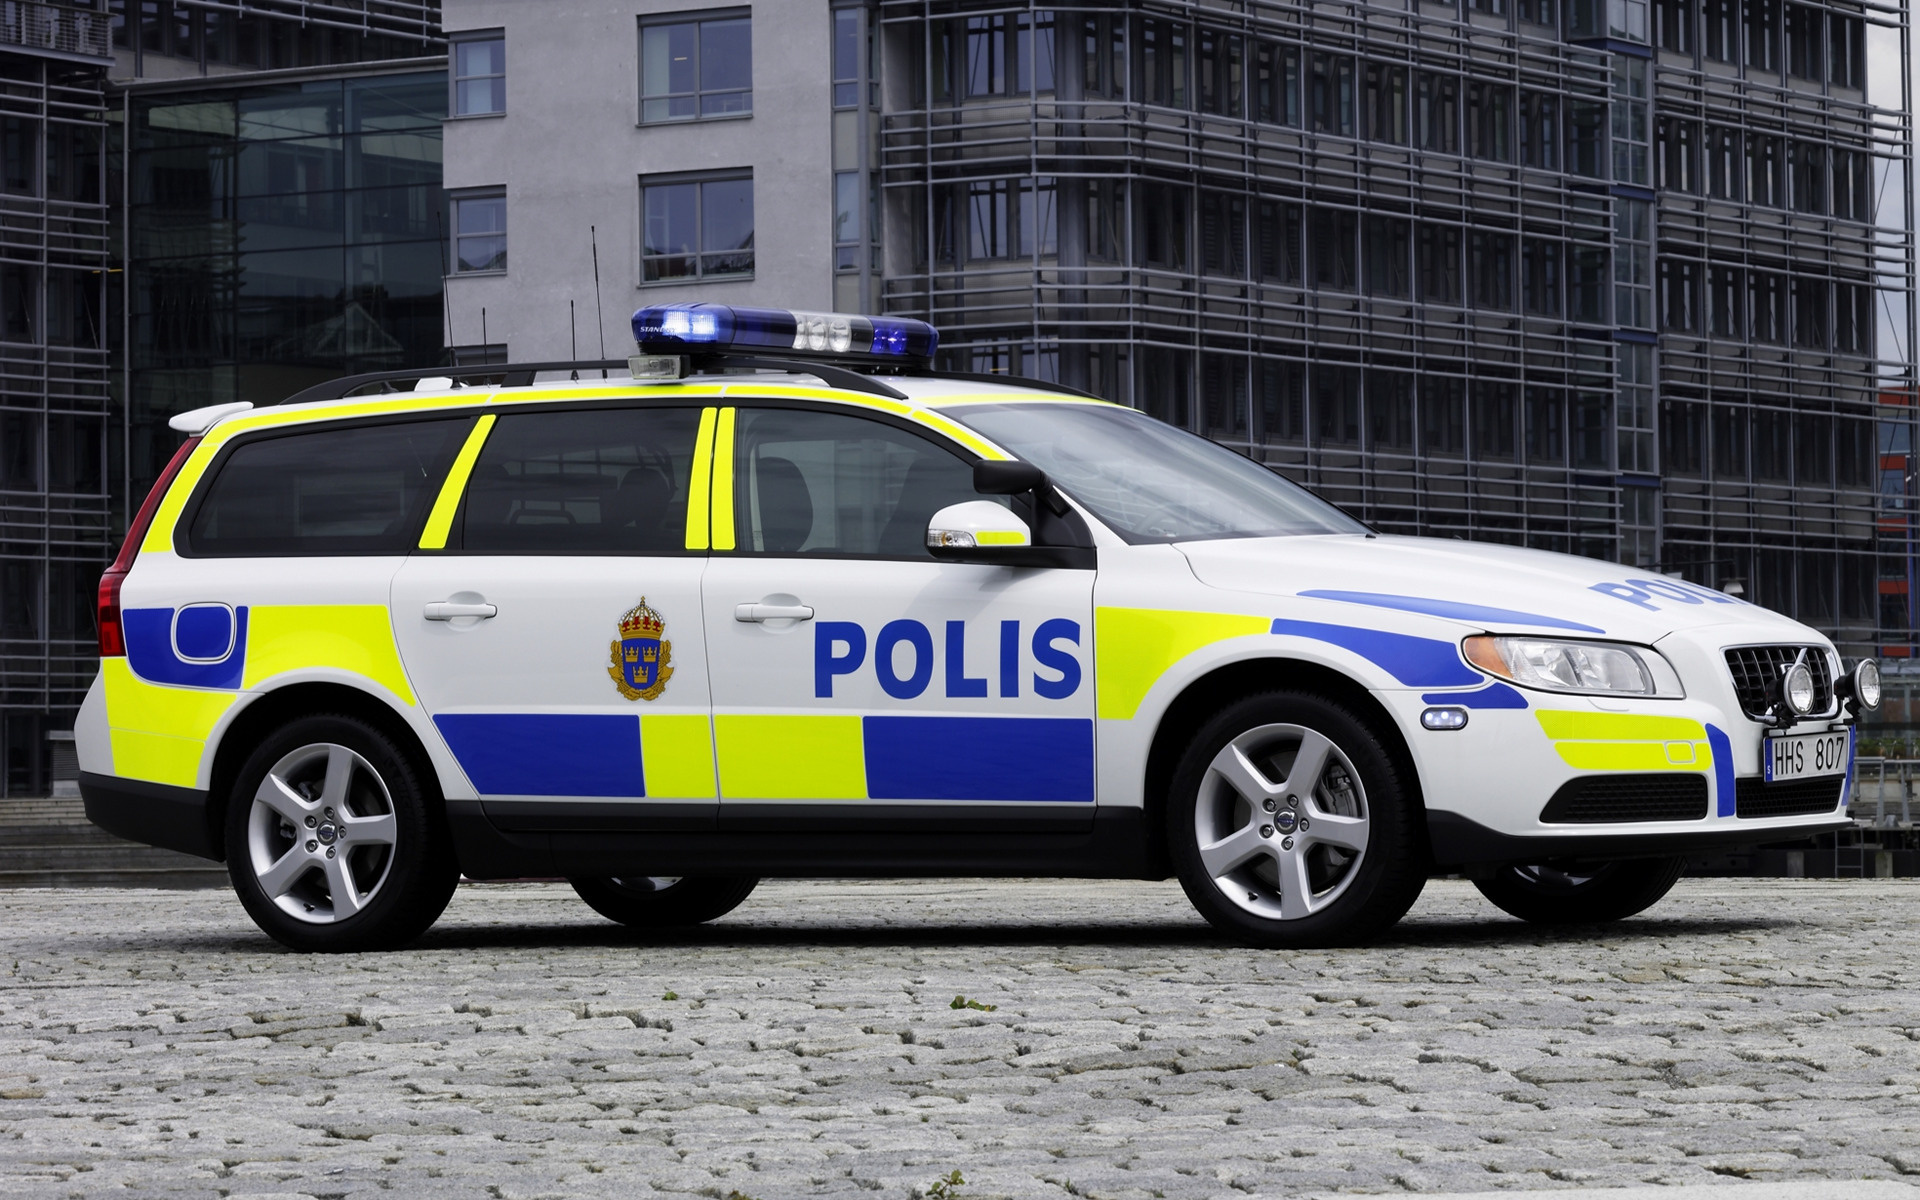 Volvo V Polis Car Wallpaper